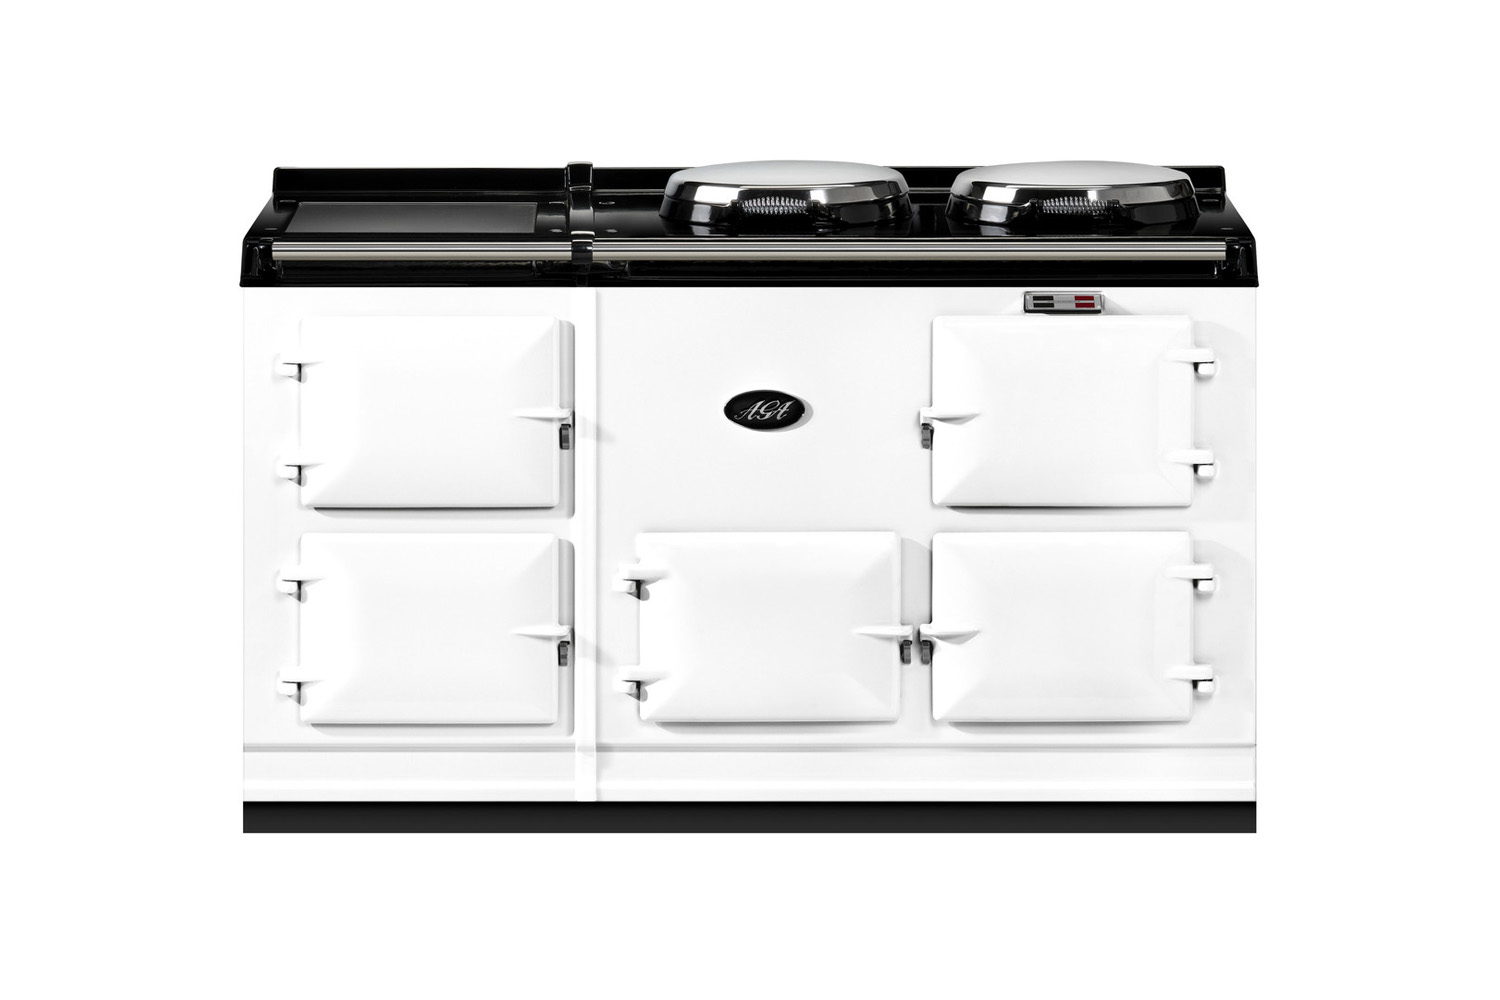 the aga r5 oven \150 oil white with stainless steel is available through aga di 14